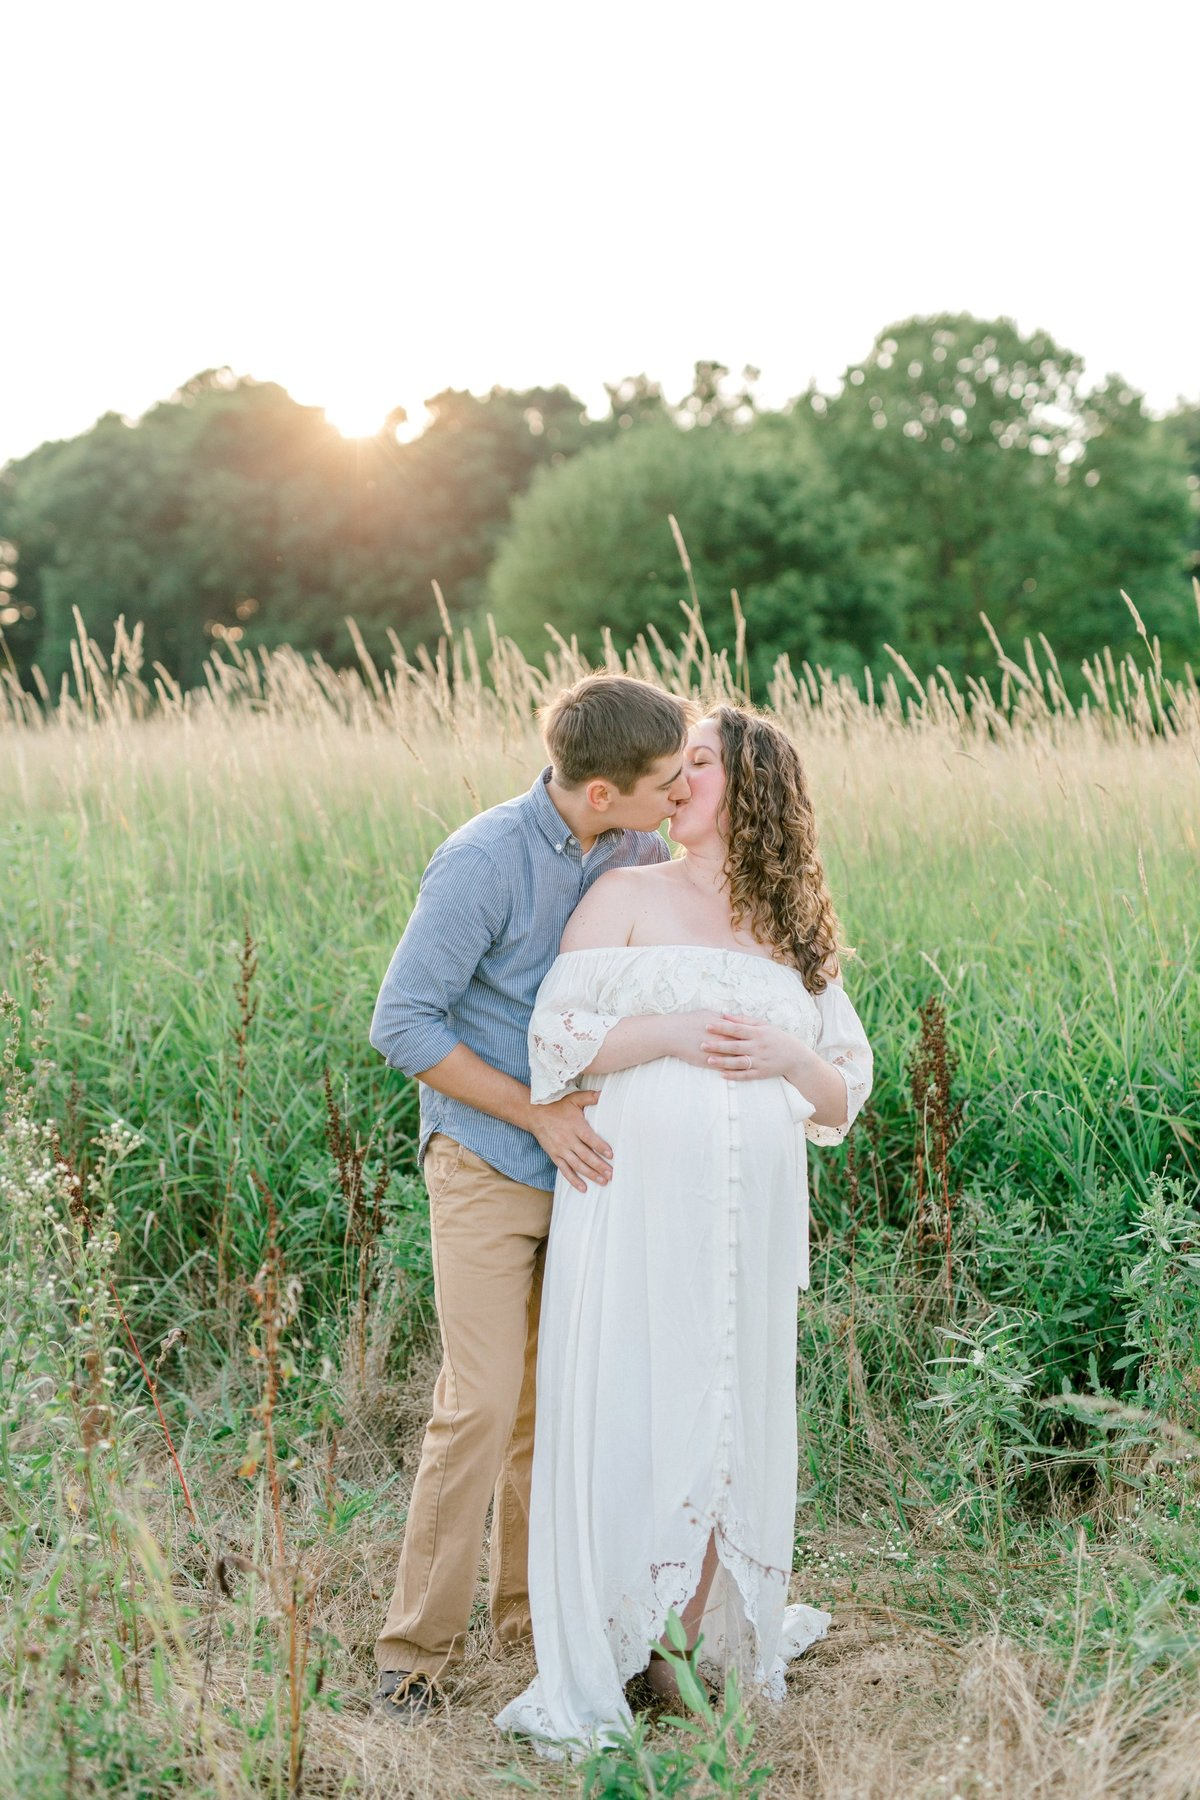 ETHEREAL SUMMER MATERNITY SESSION | MECHANICSBURG MATERNITY PHOTOGRAPHER_0996